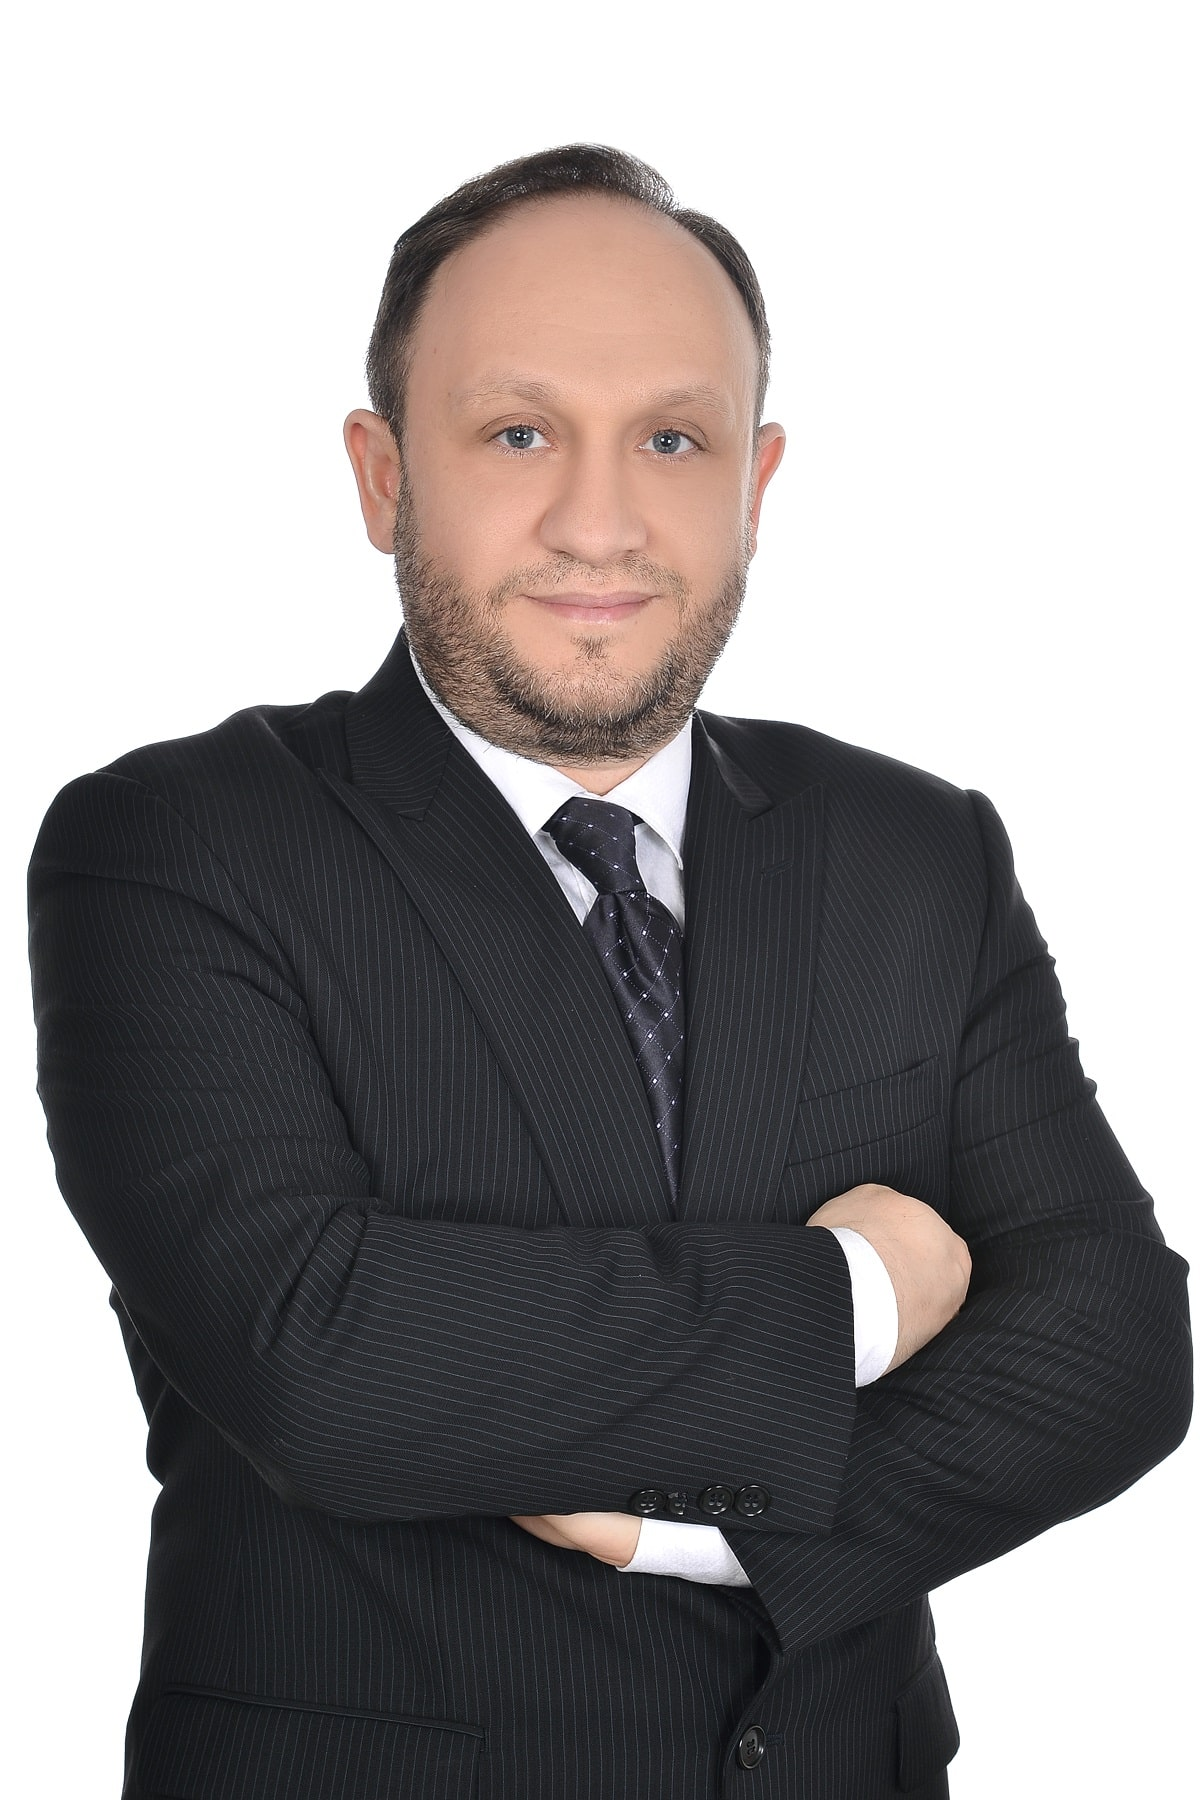 Dr Mohamad Istanboli